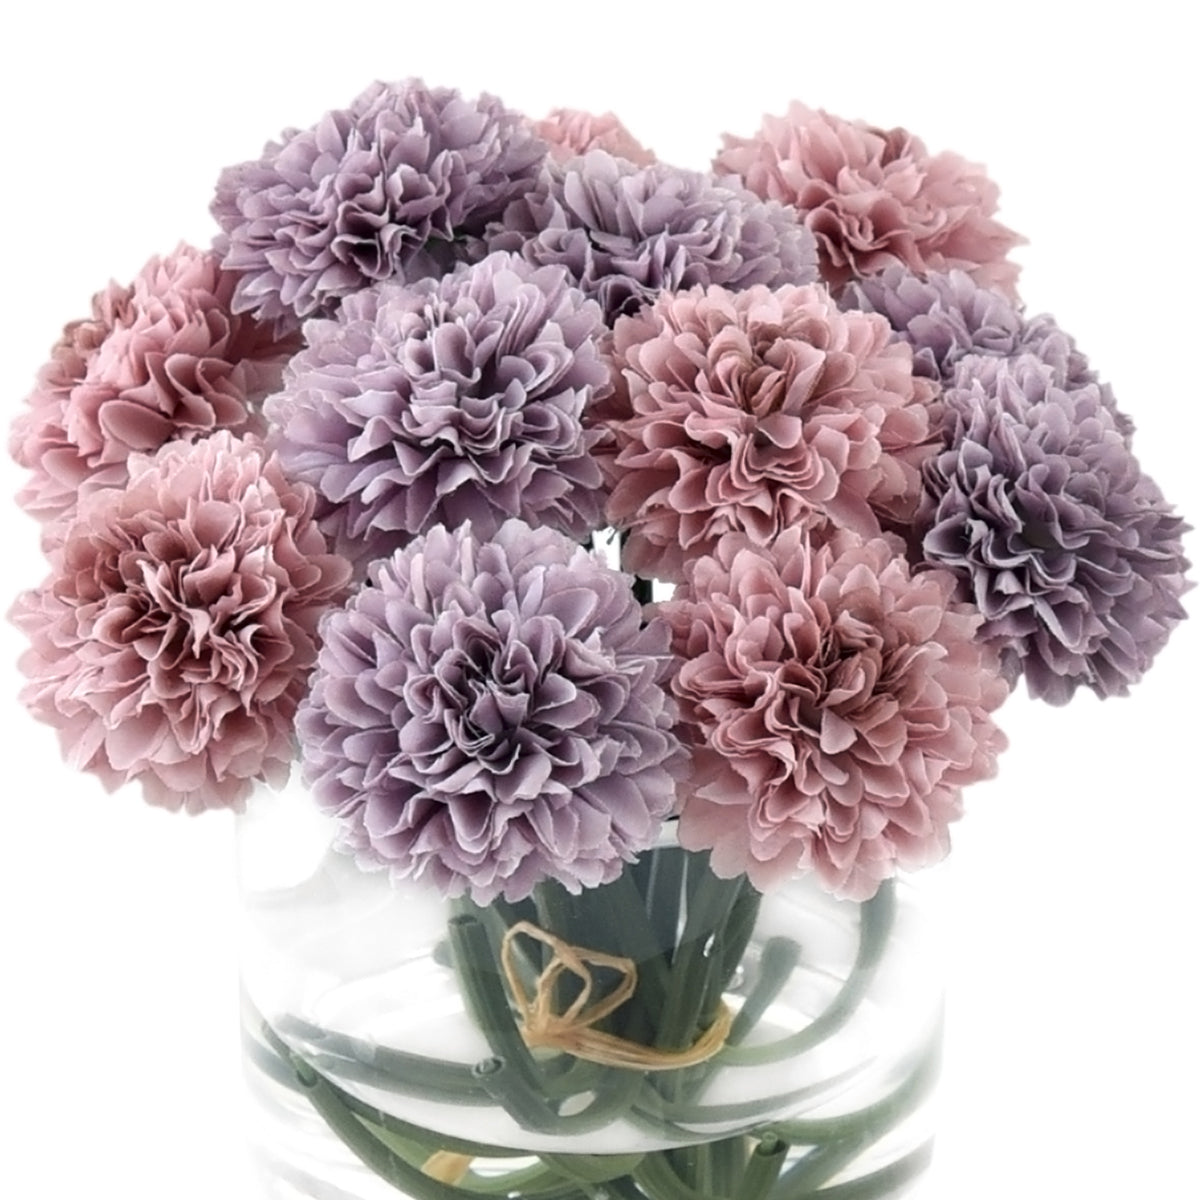 Faux Pink and Purple Chrysanthemum in a glass vase with water